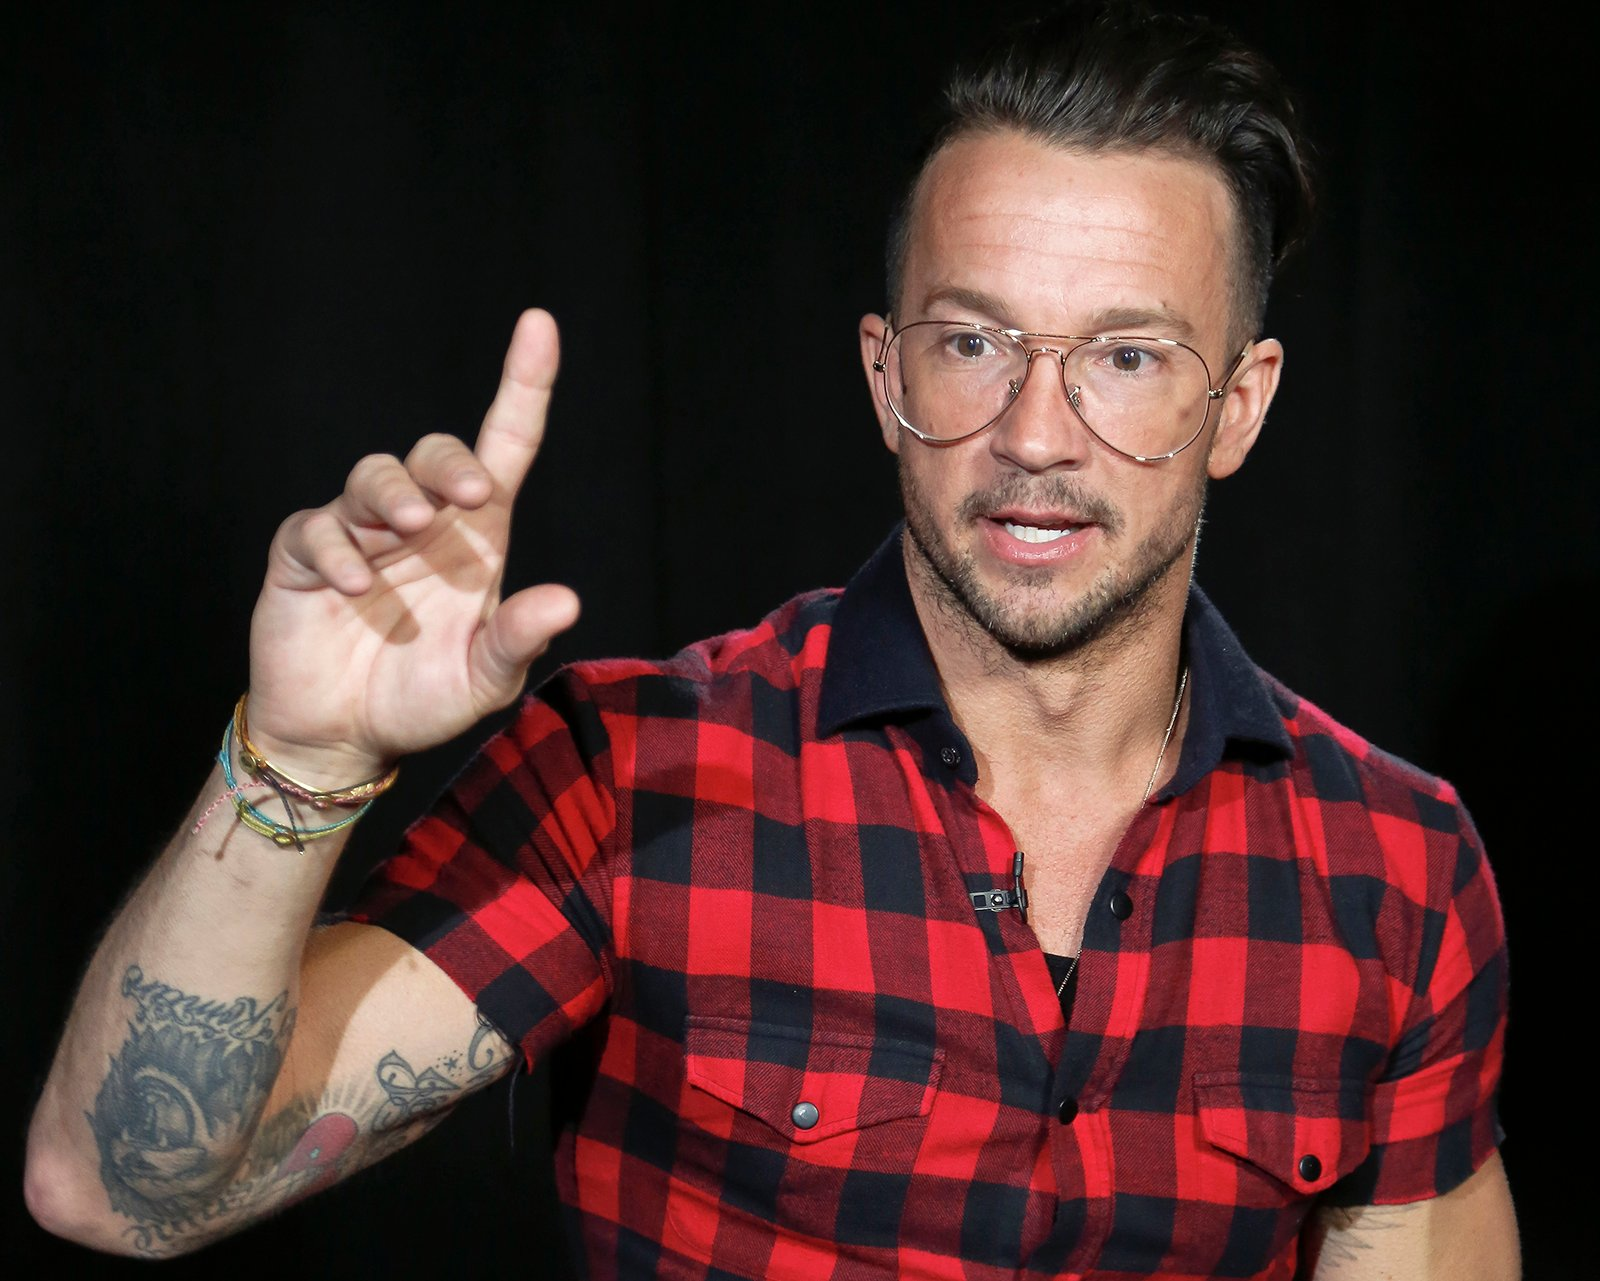 Carl Lentz and the 'hot pastor' problem